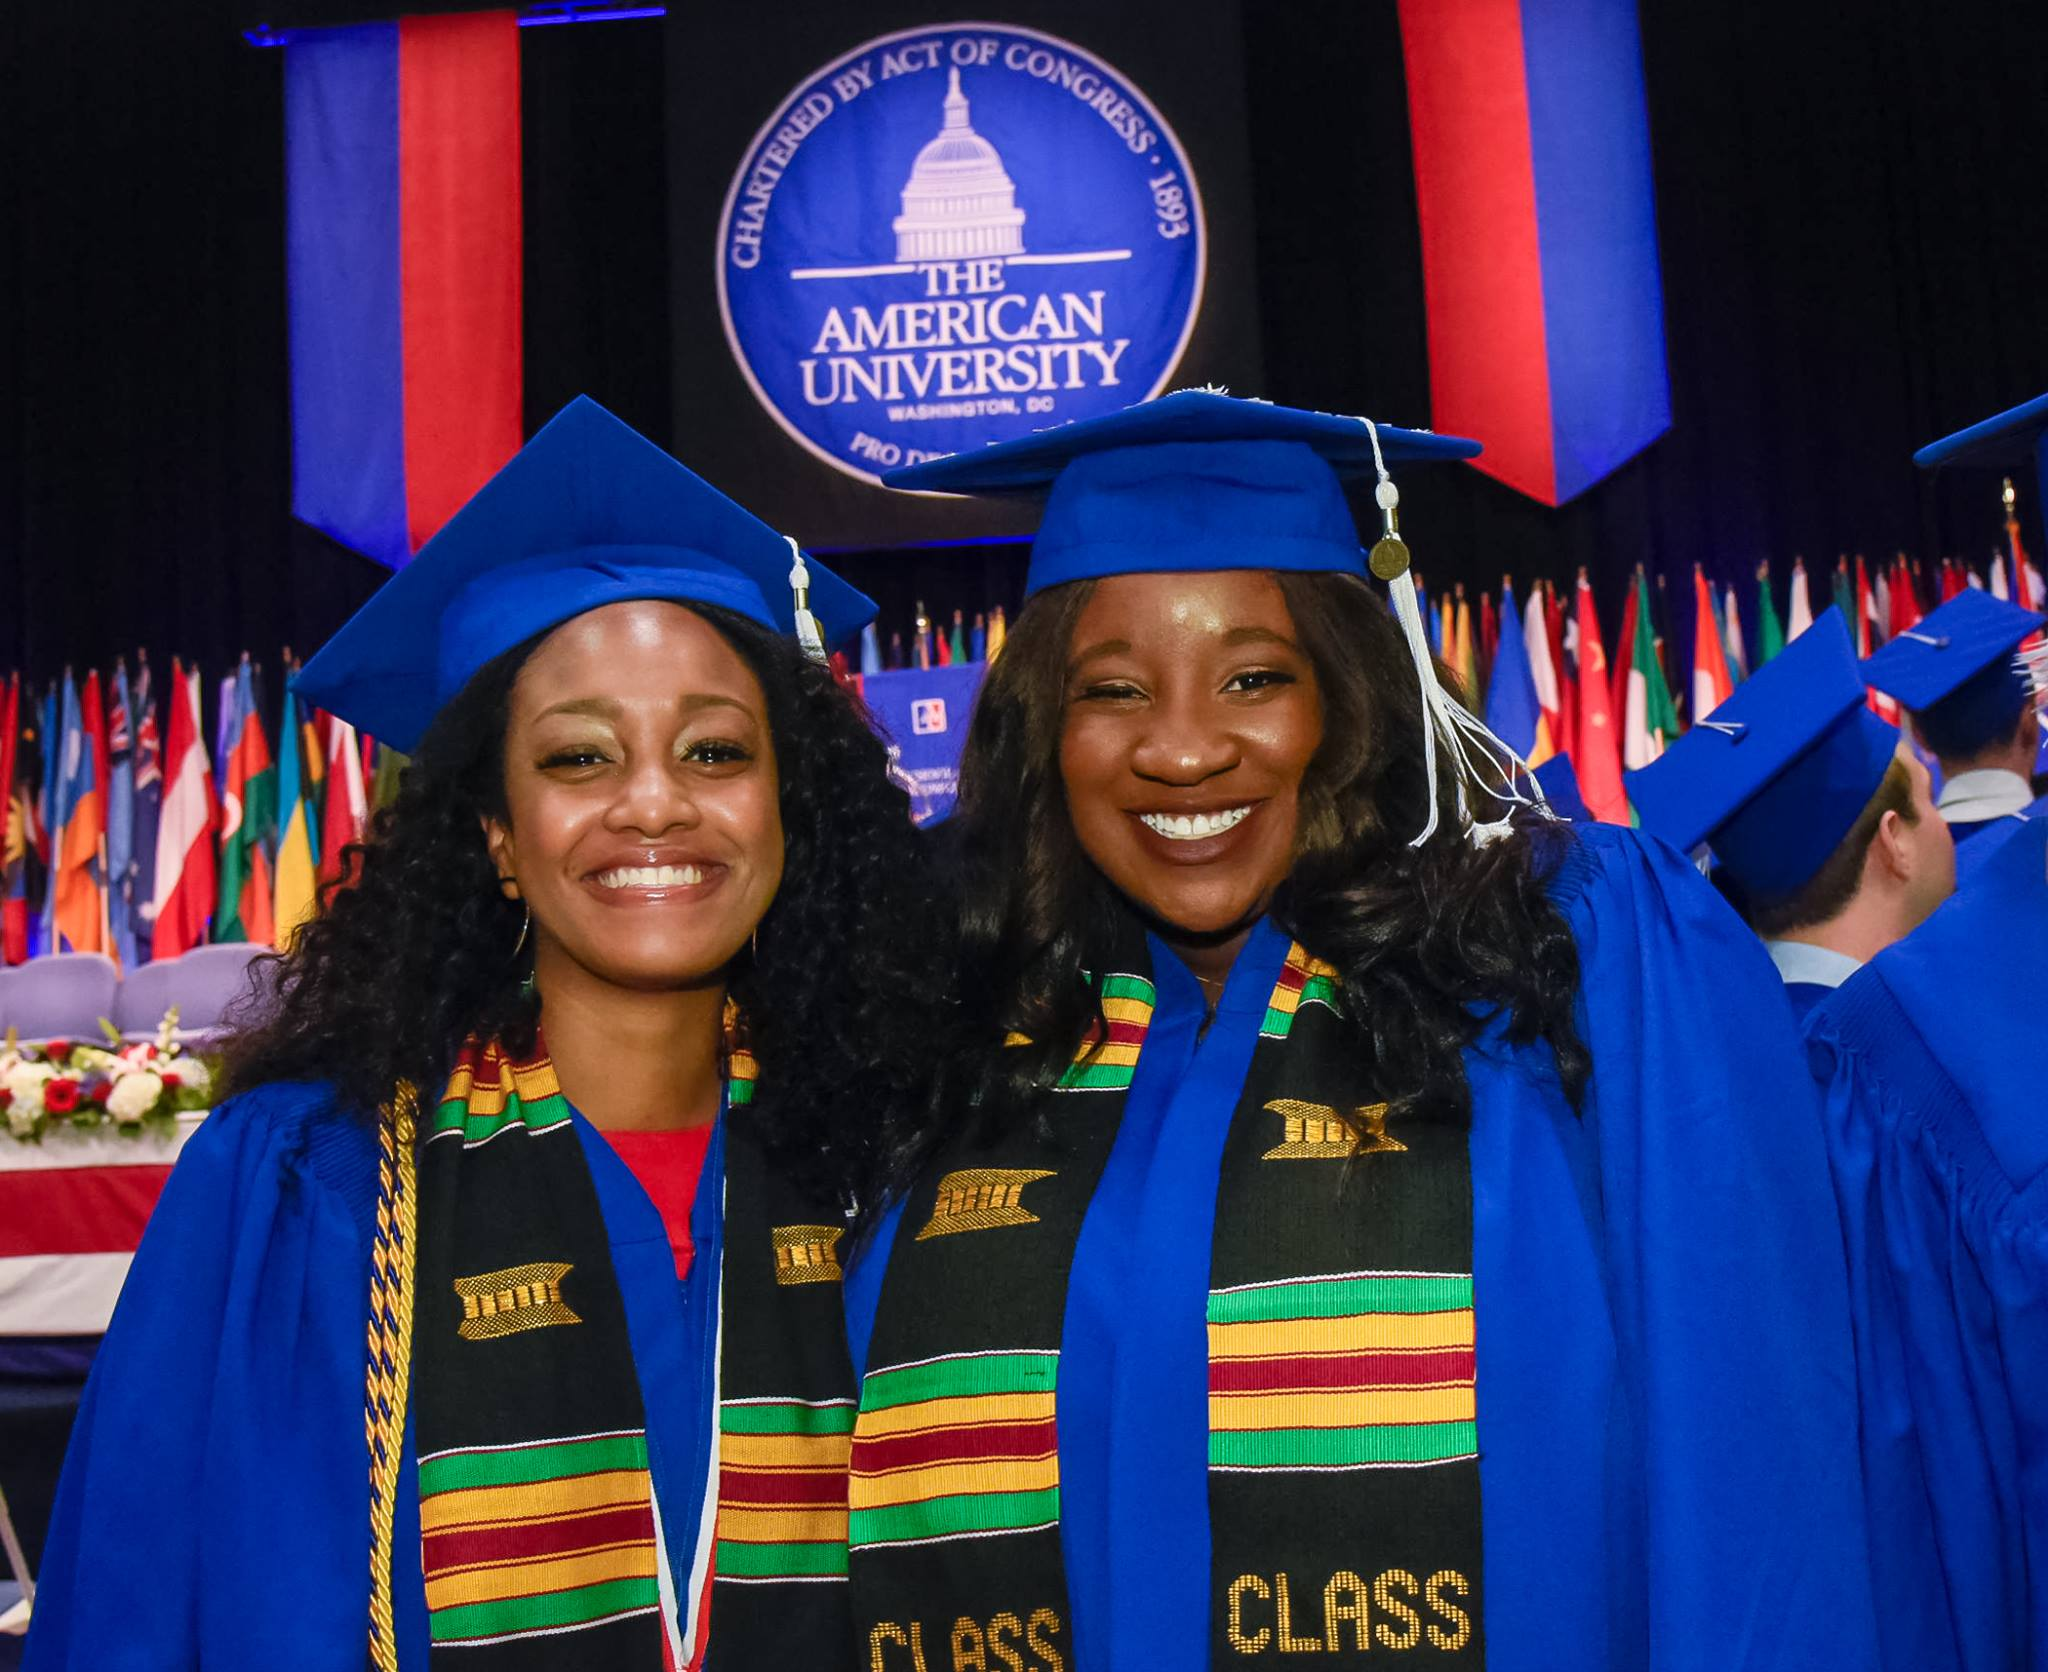 Elisha Brown (left) and Taryn Daniels (right) at their graduation ceremony